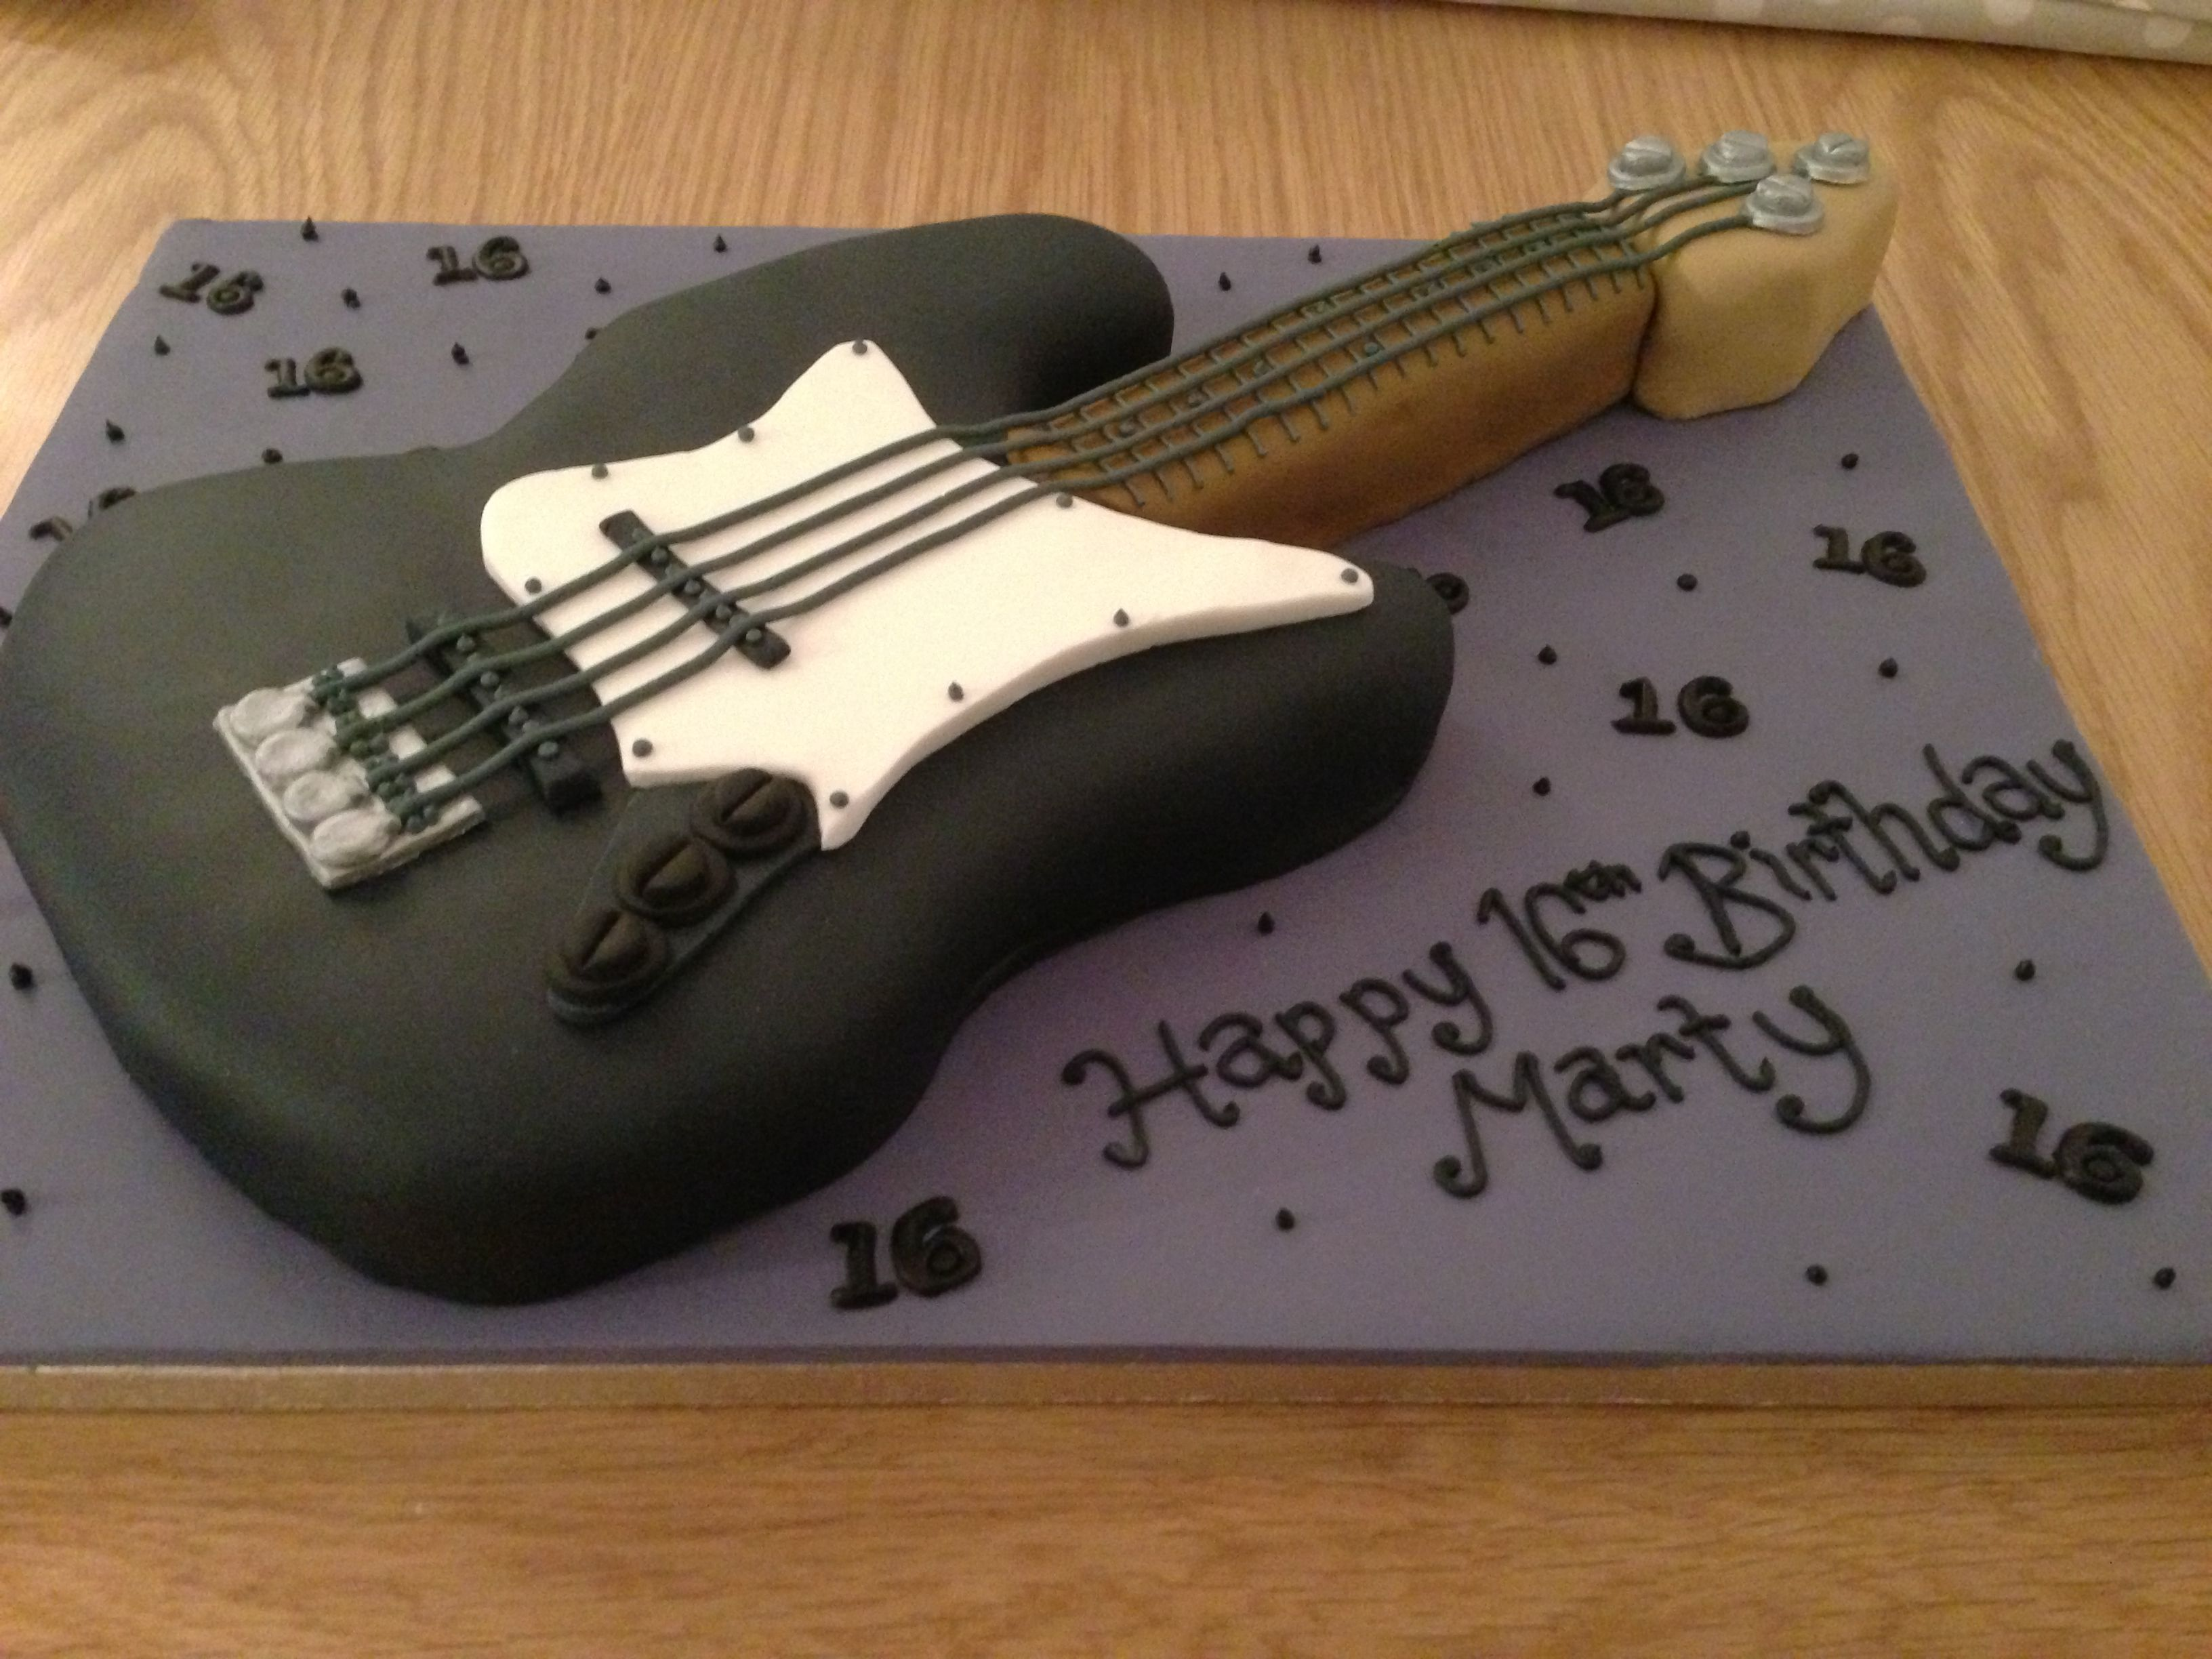 16th birthday guitar shaped cake For The Hubby